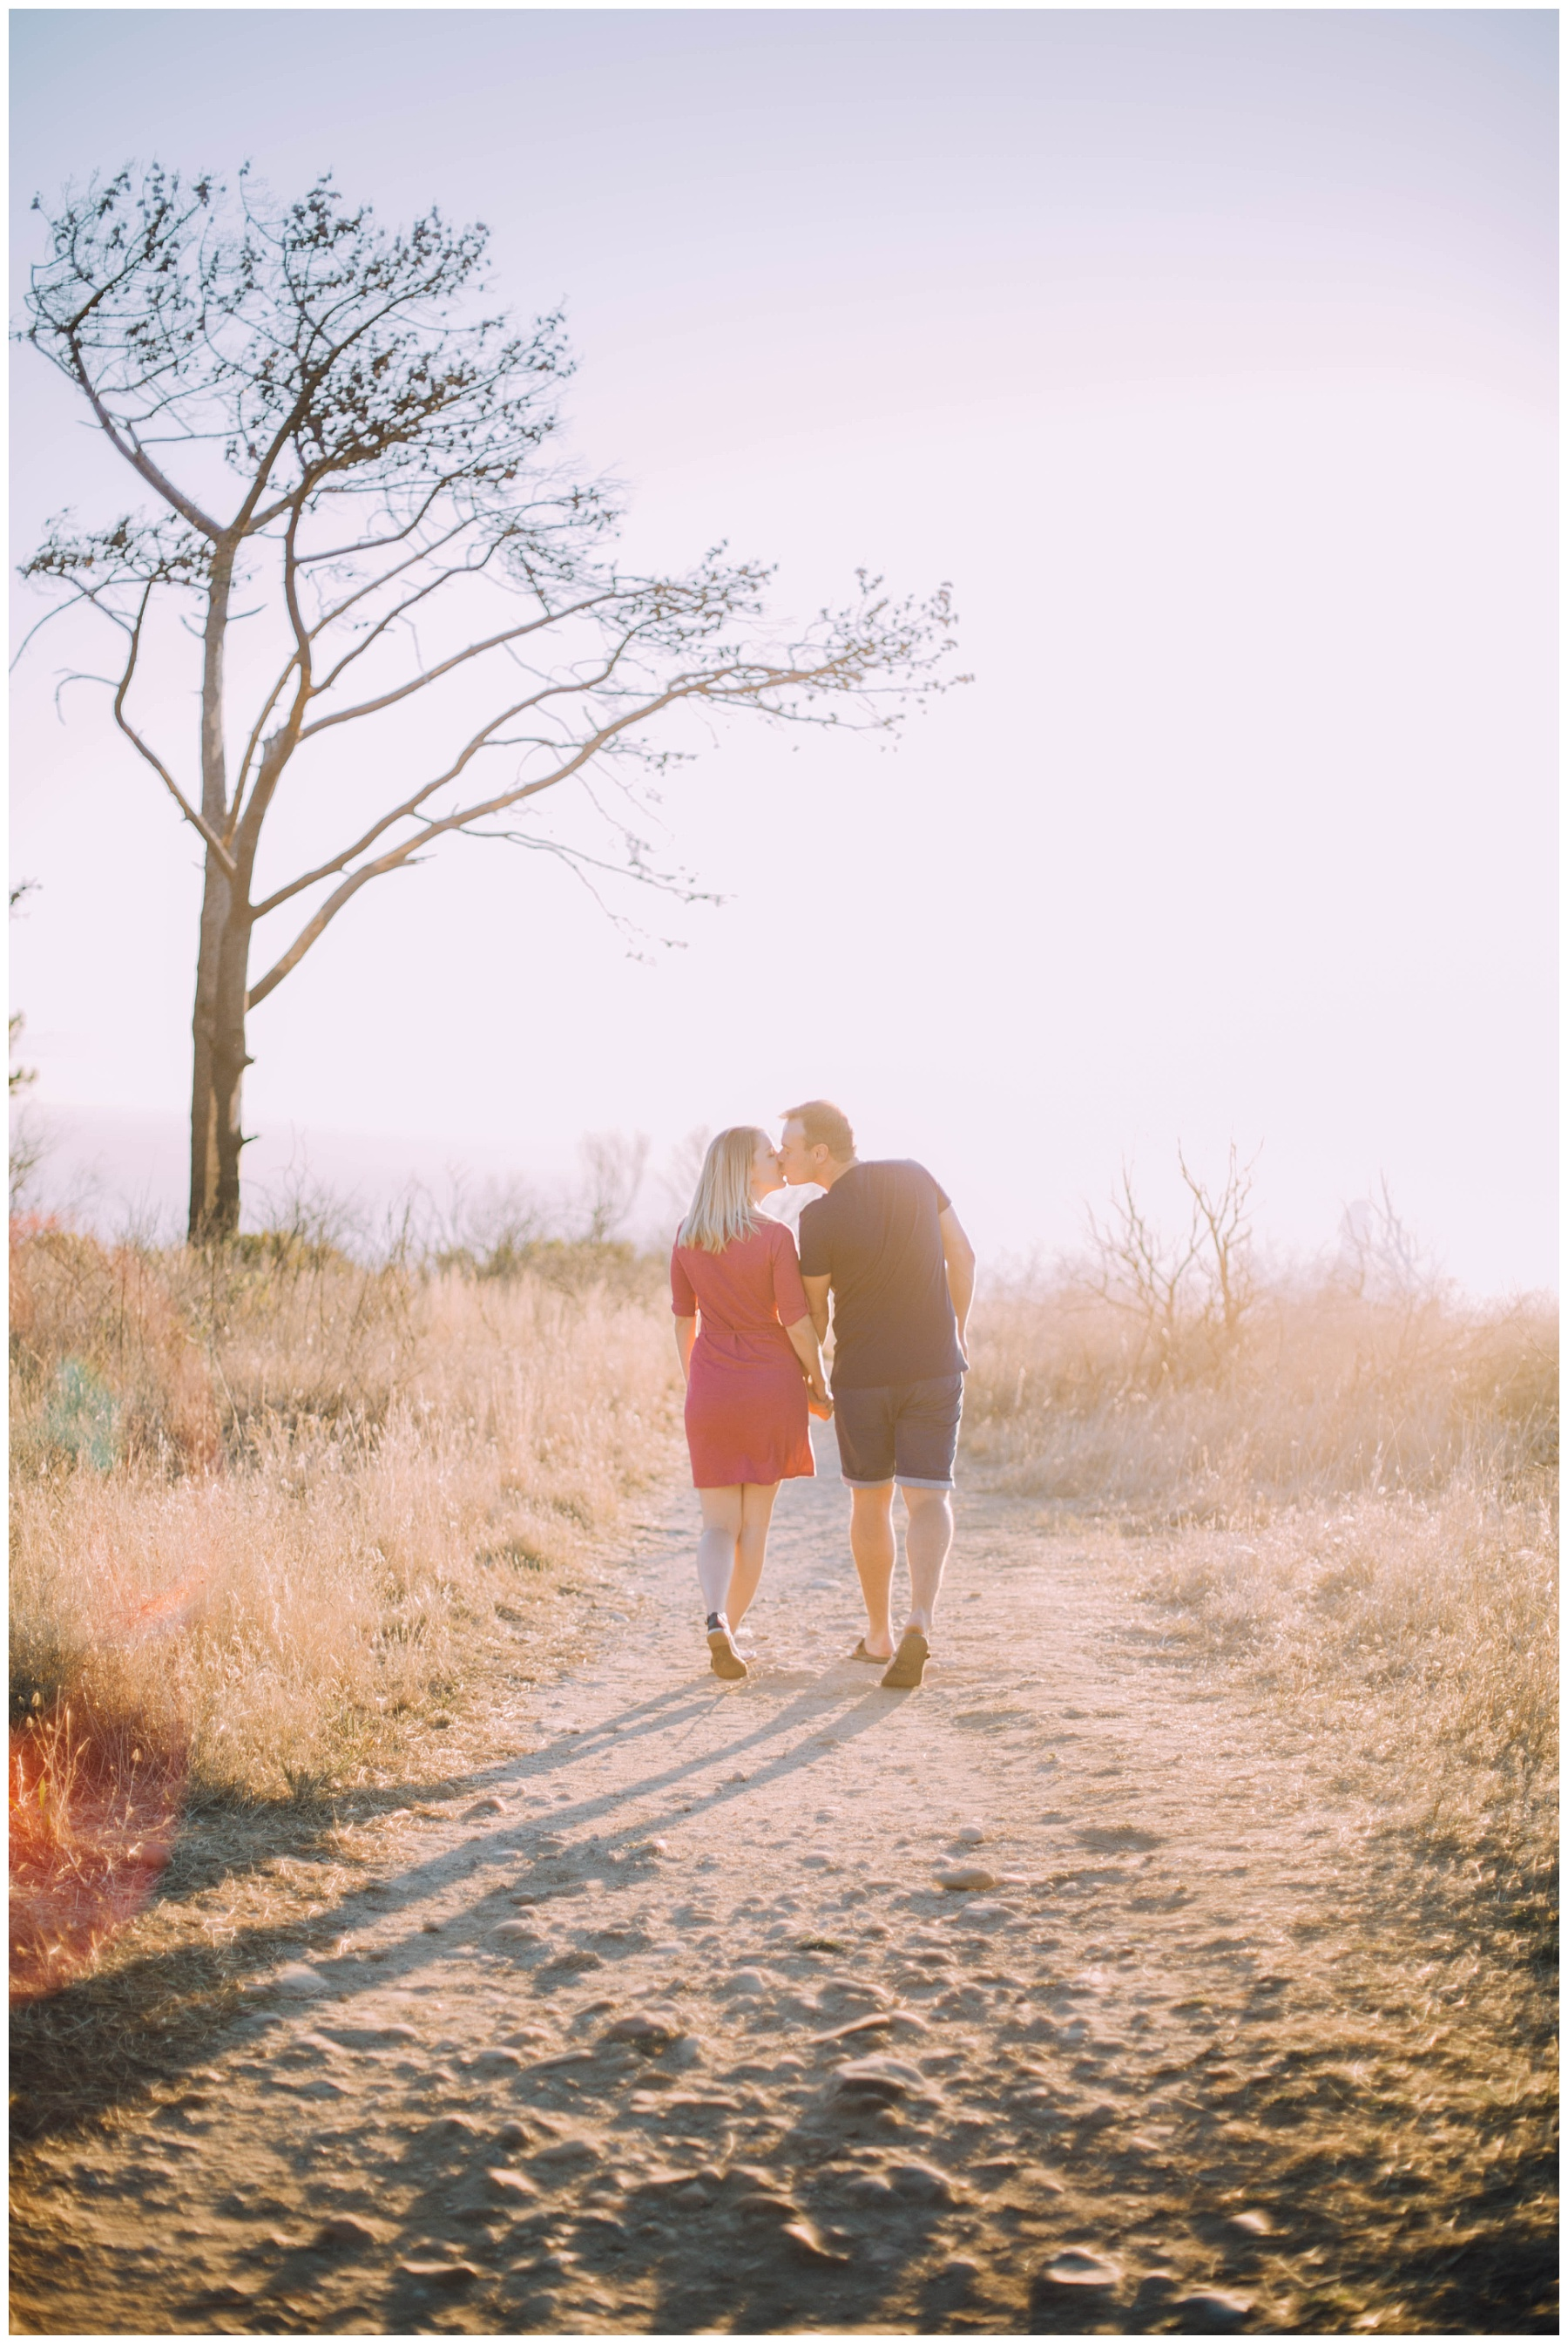 Ronel Kruger Cape Town Wedding and Lifestyle Photographer_2119.jpg